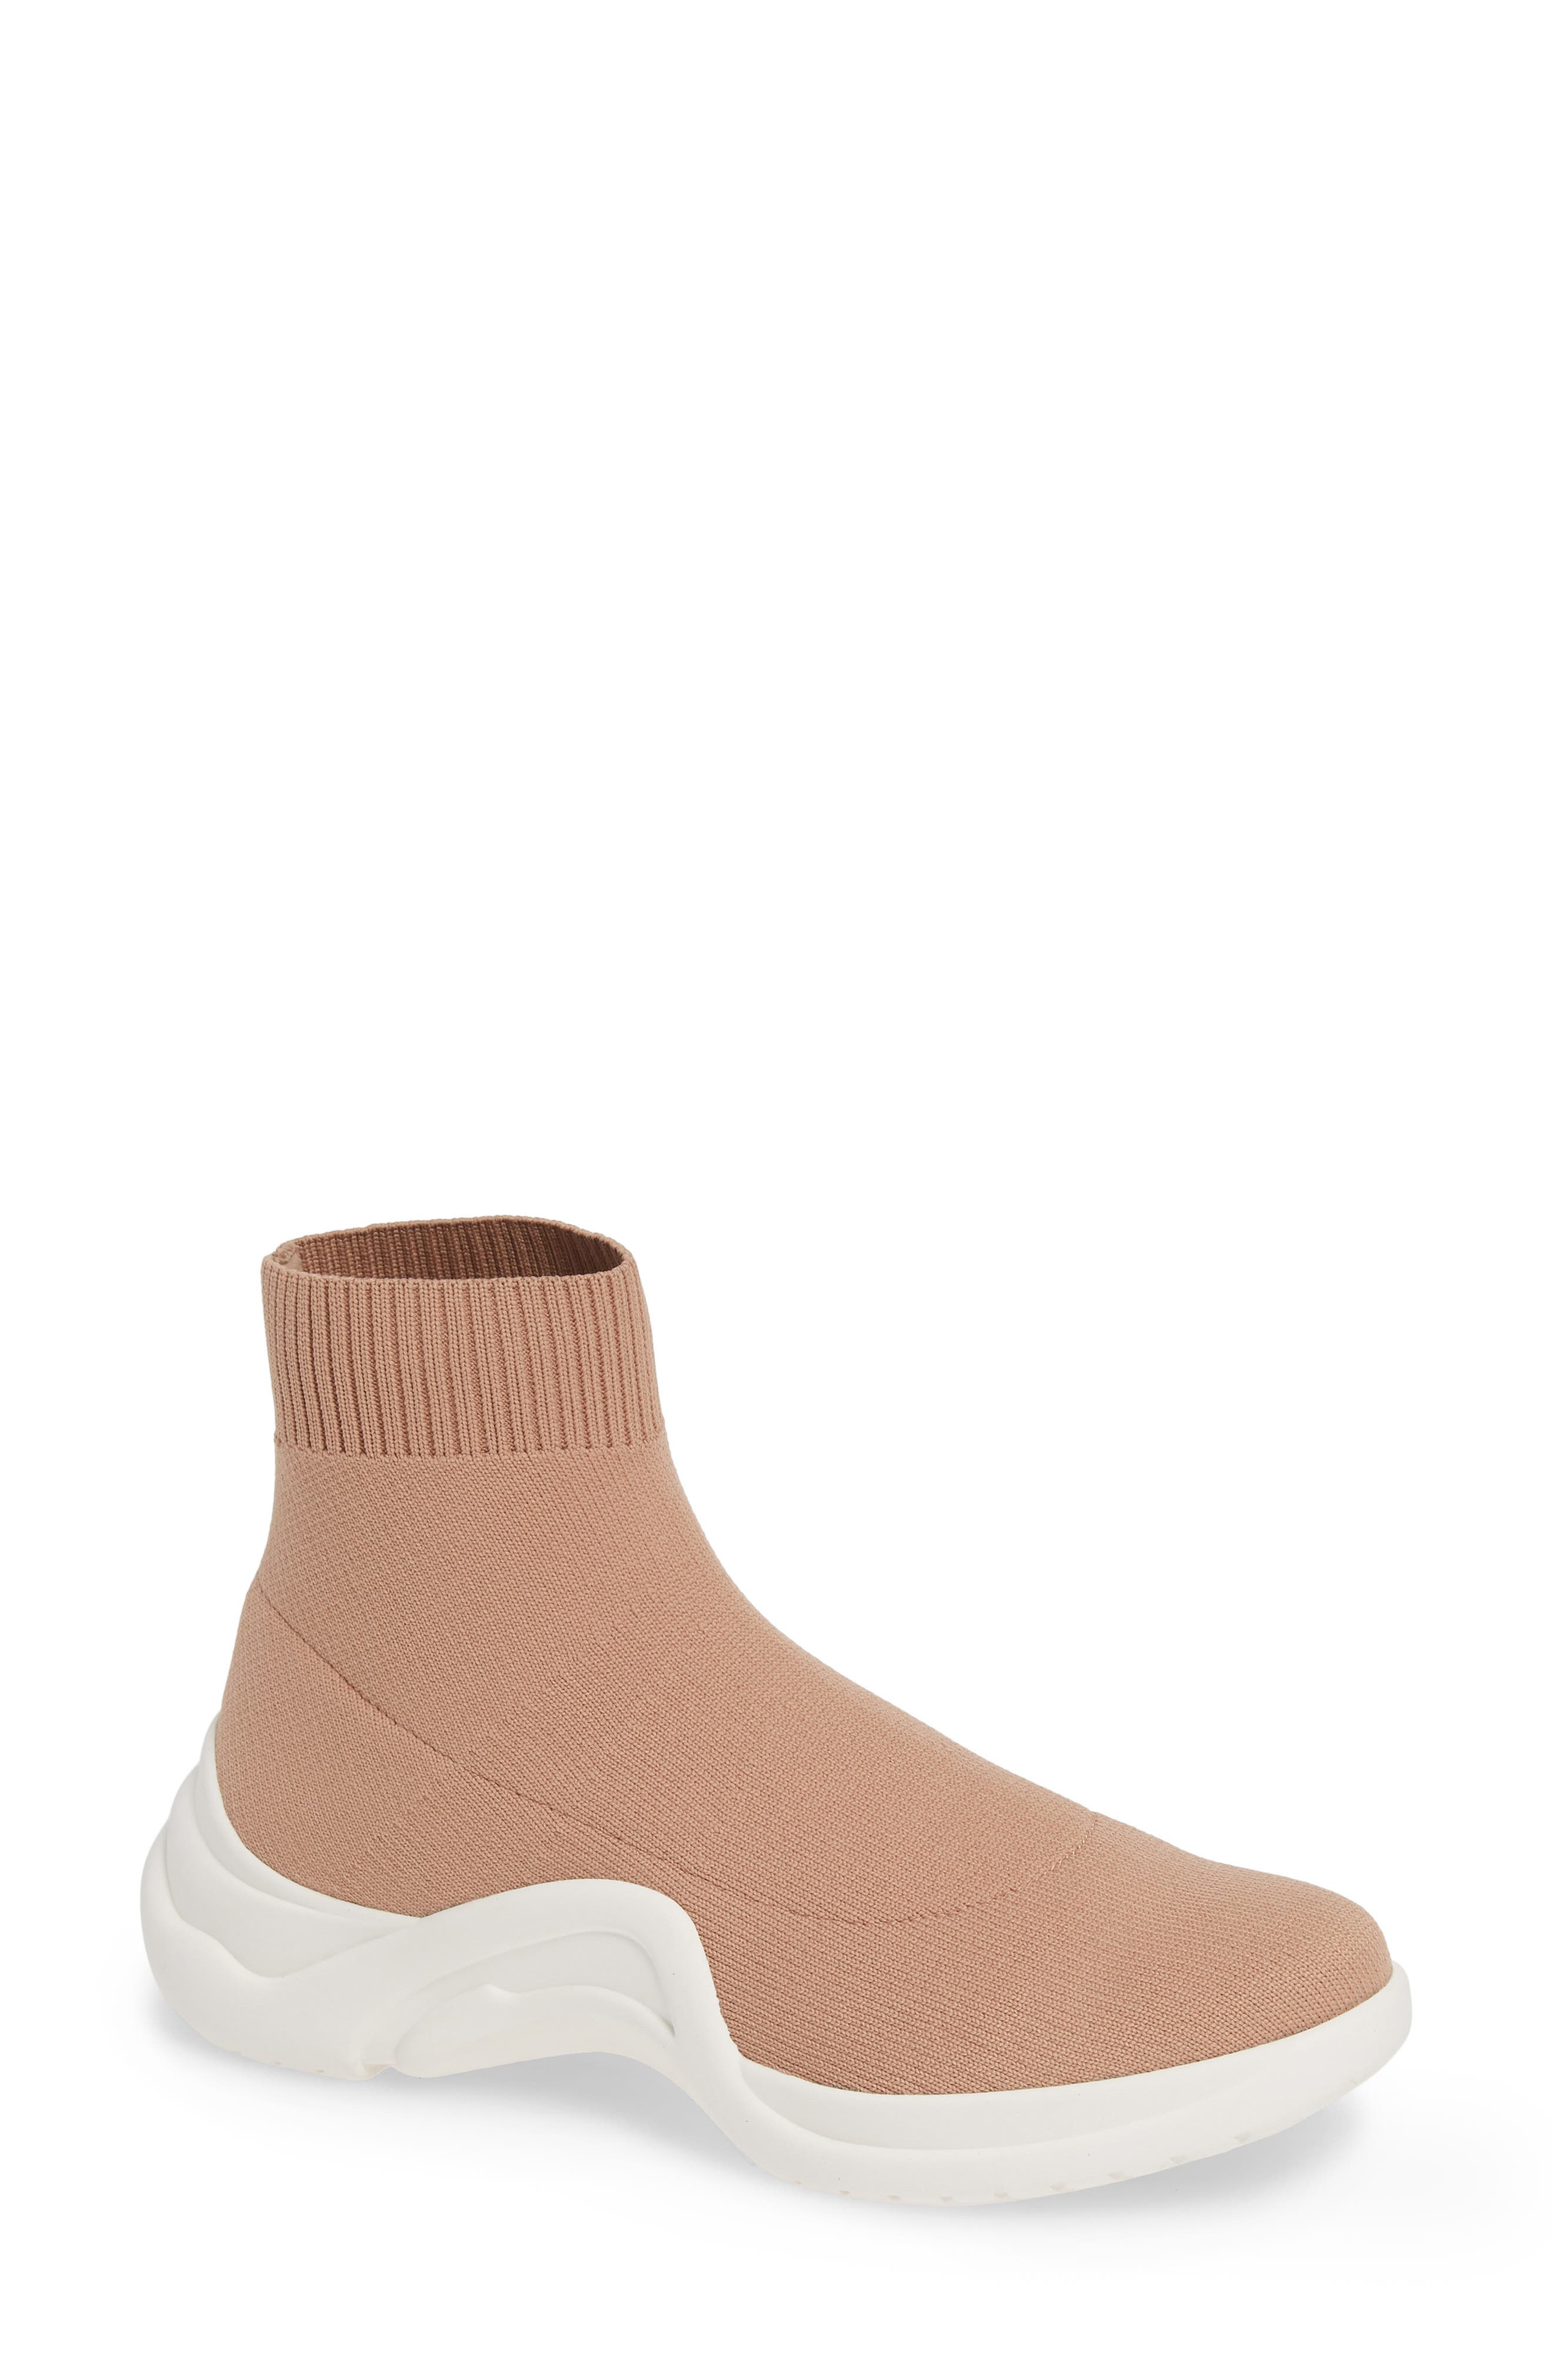 Linea Paolo Gale Sneaker, Pink